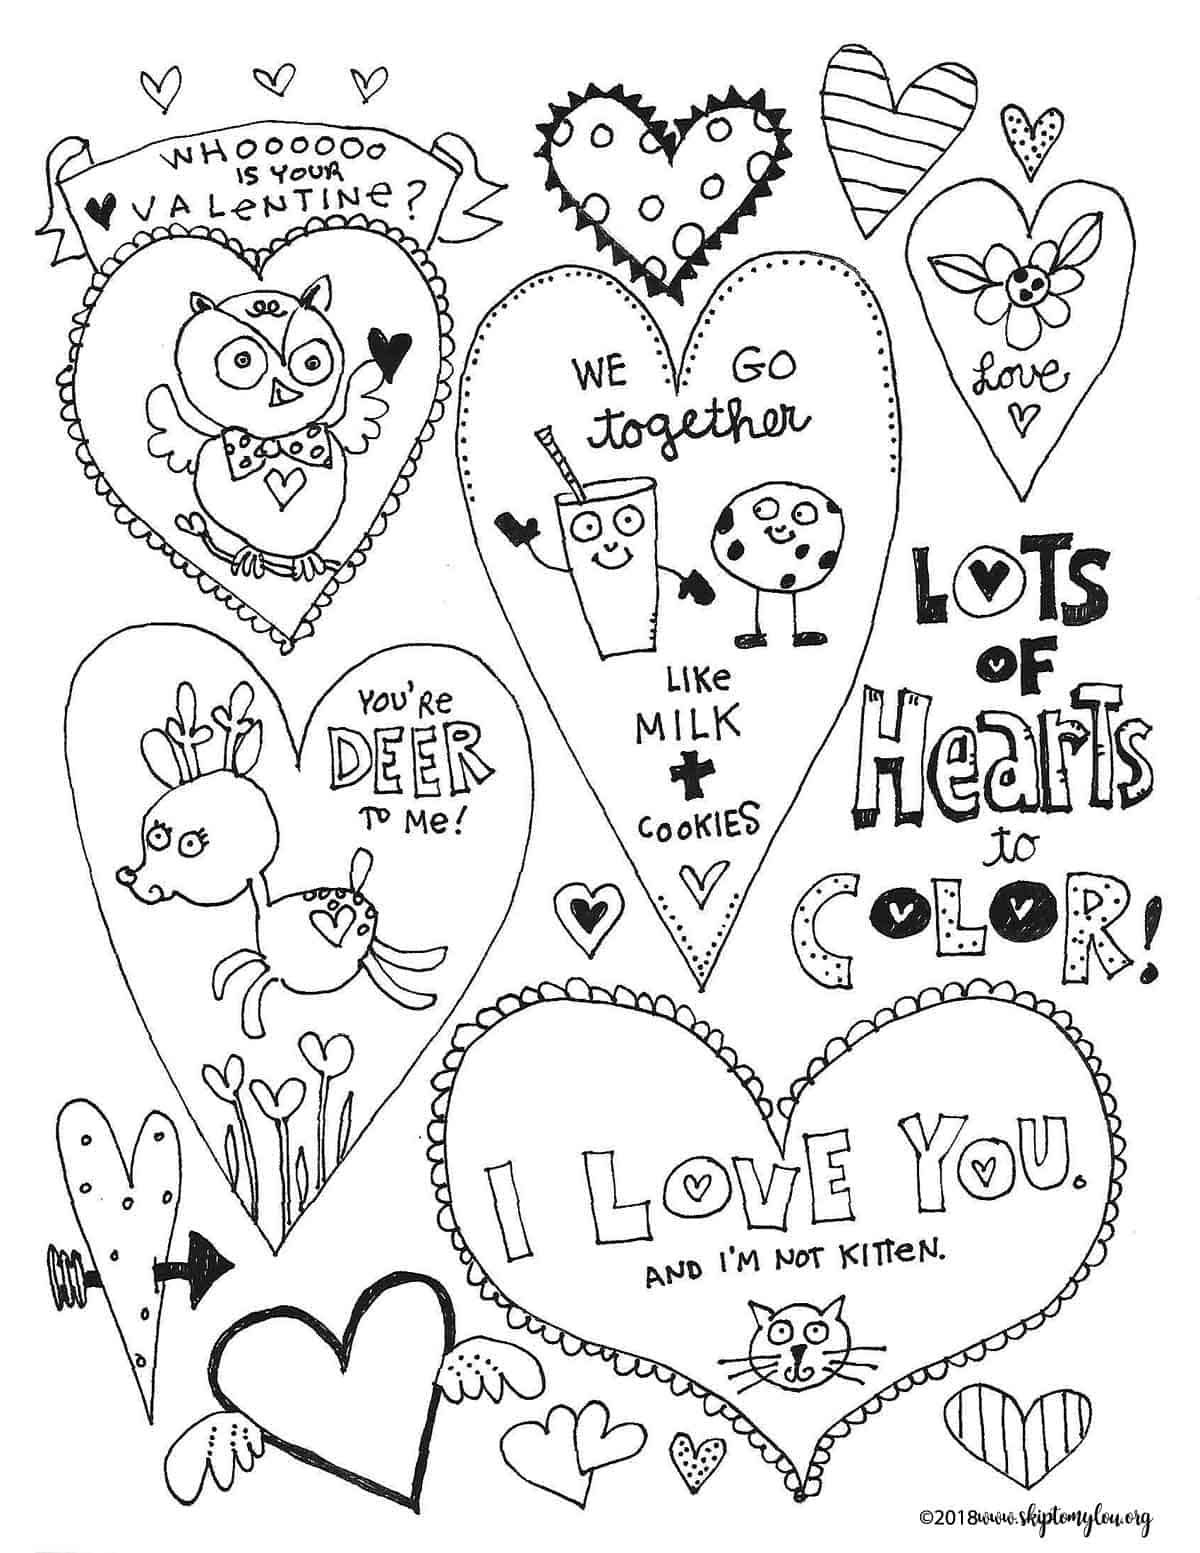 Free Printable Heart Coloring Pages For Valentine's Day. Coloring